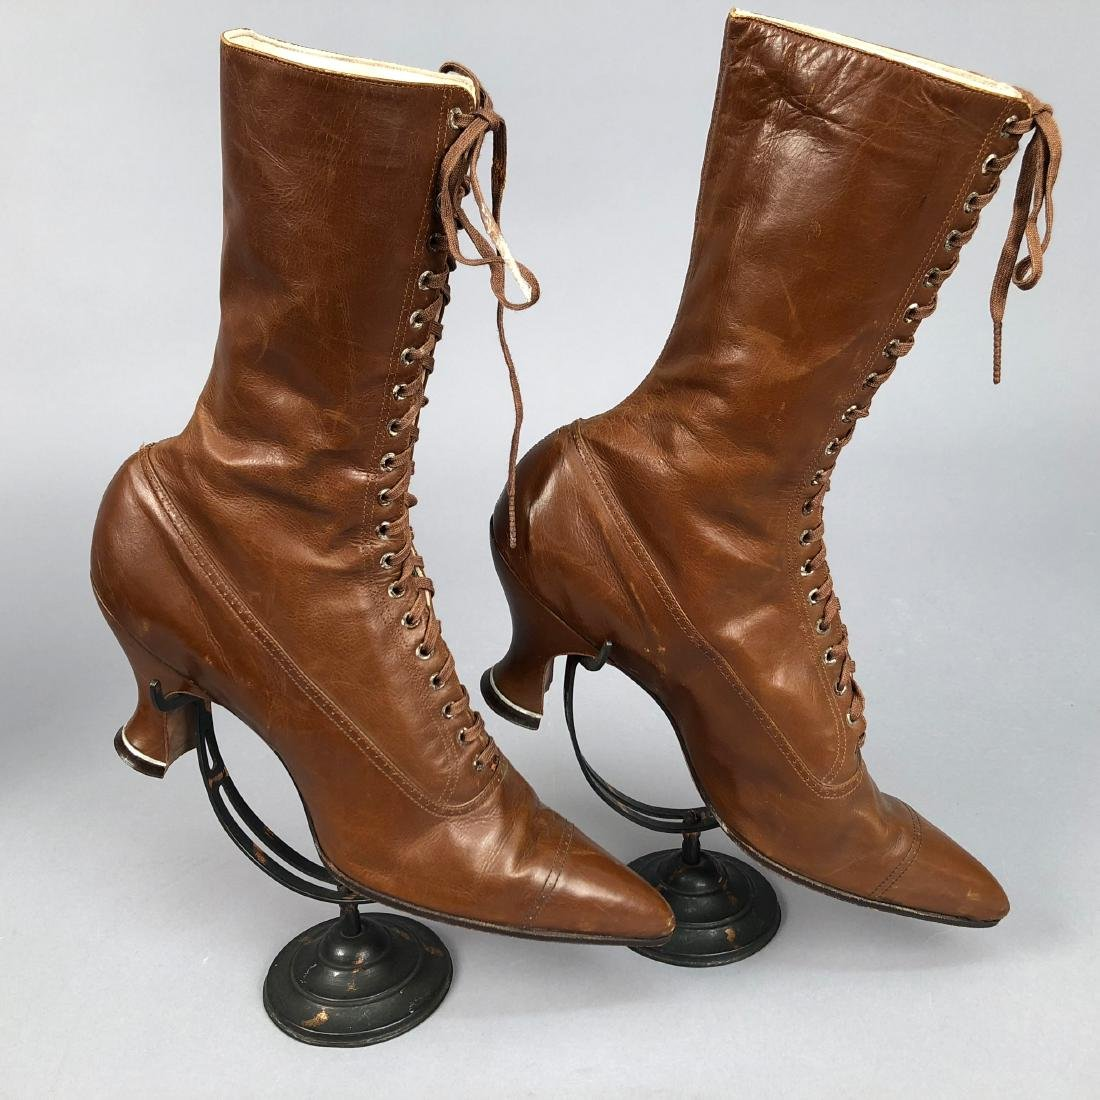 THREE PAIR HIGH-LACING BOOTS, 1890s - 2